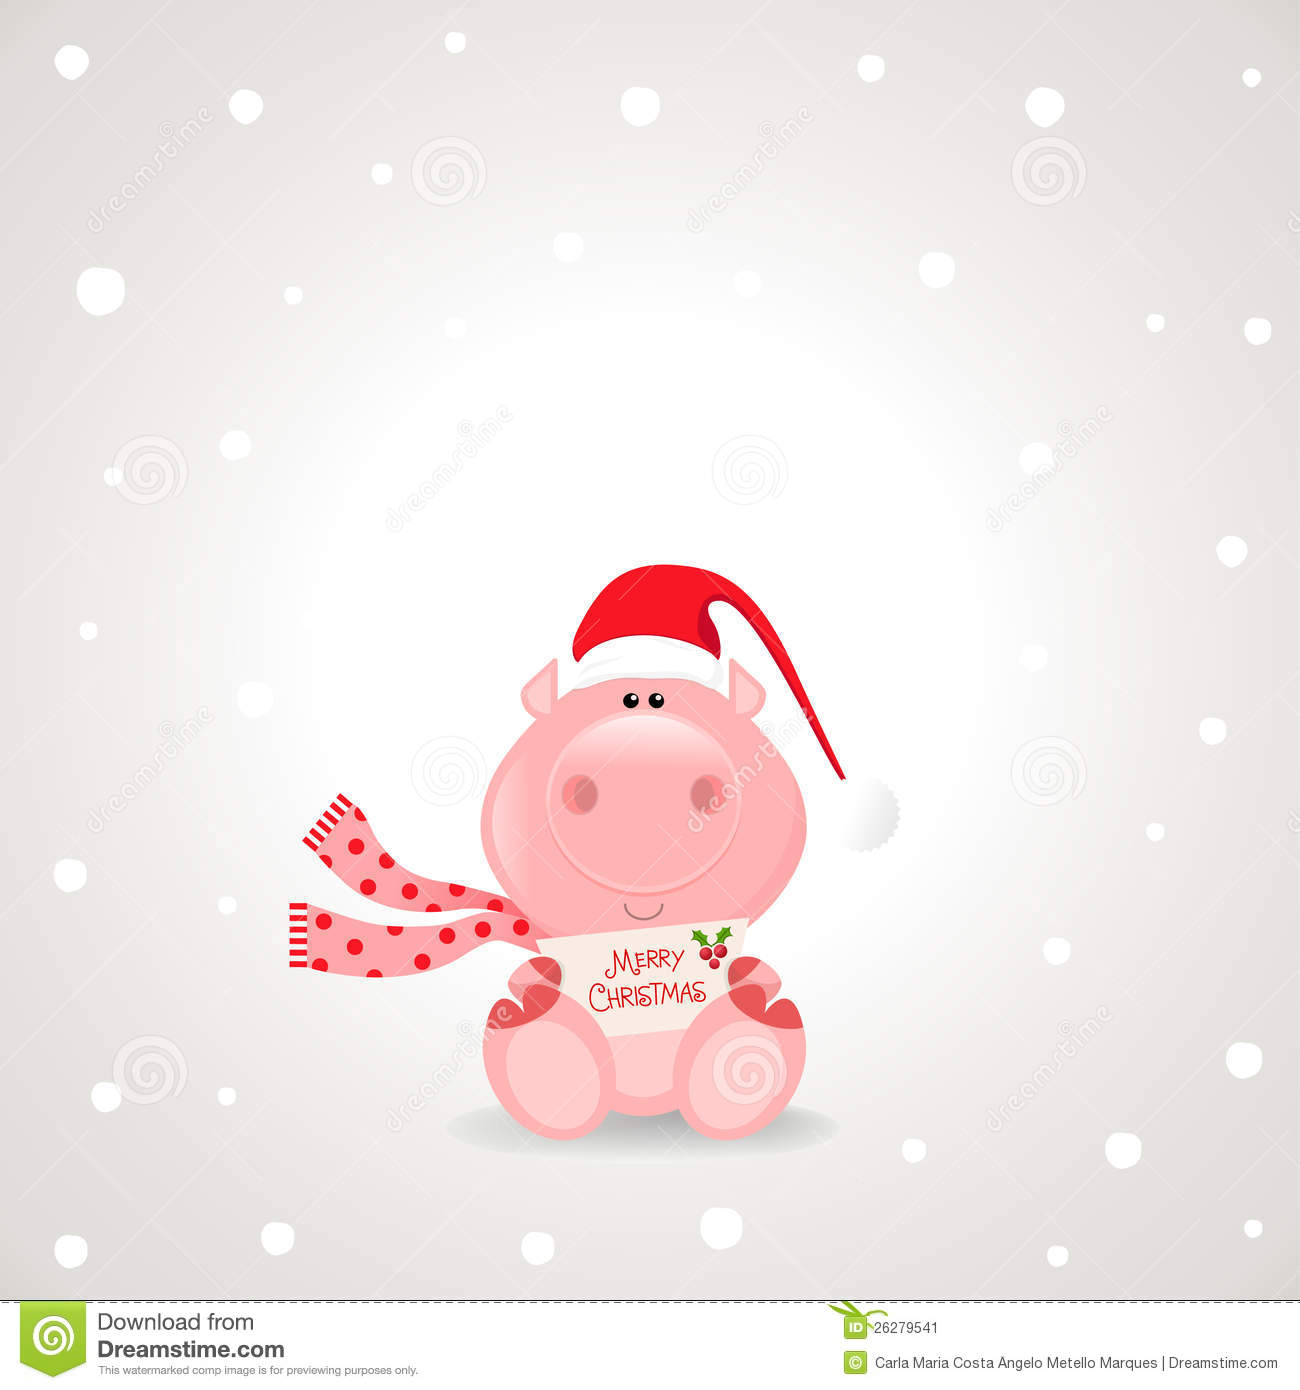 Christmas Theme  Funny Rose Pig Holding A Merry Christmas Sign